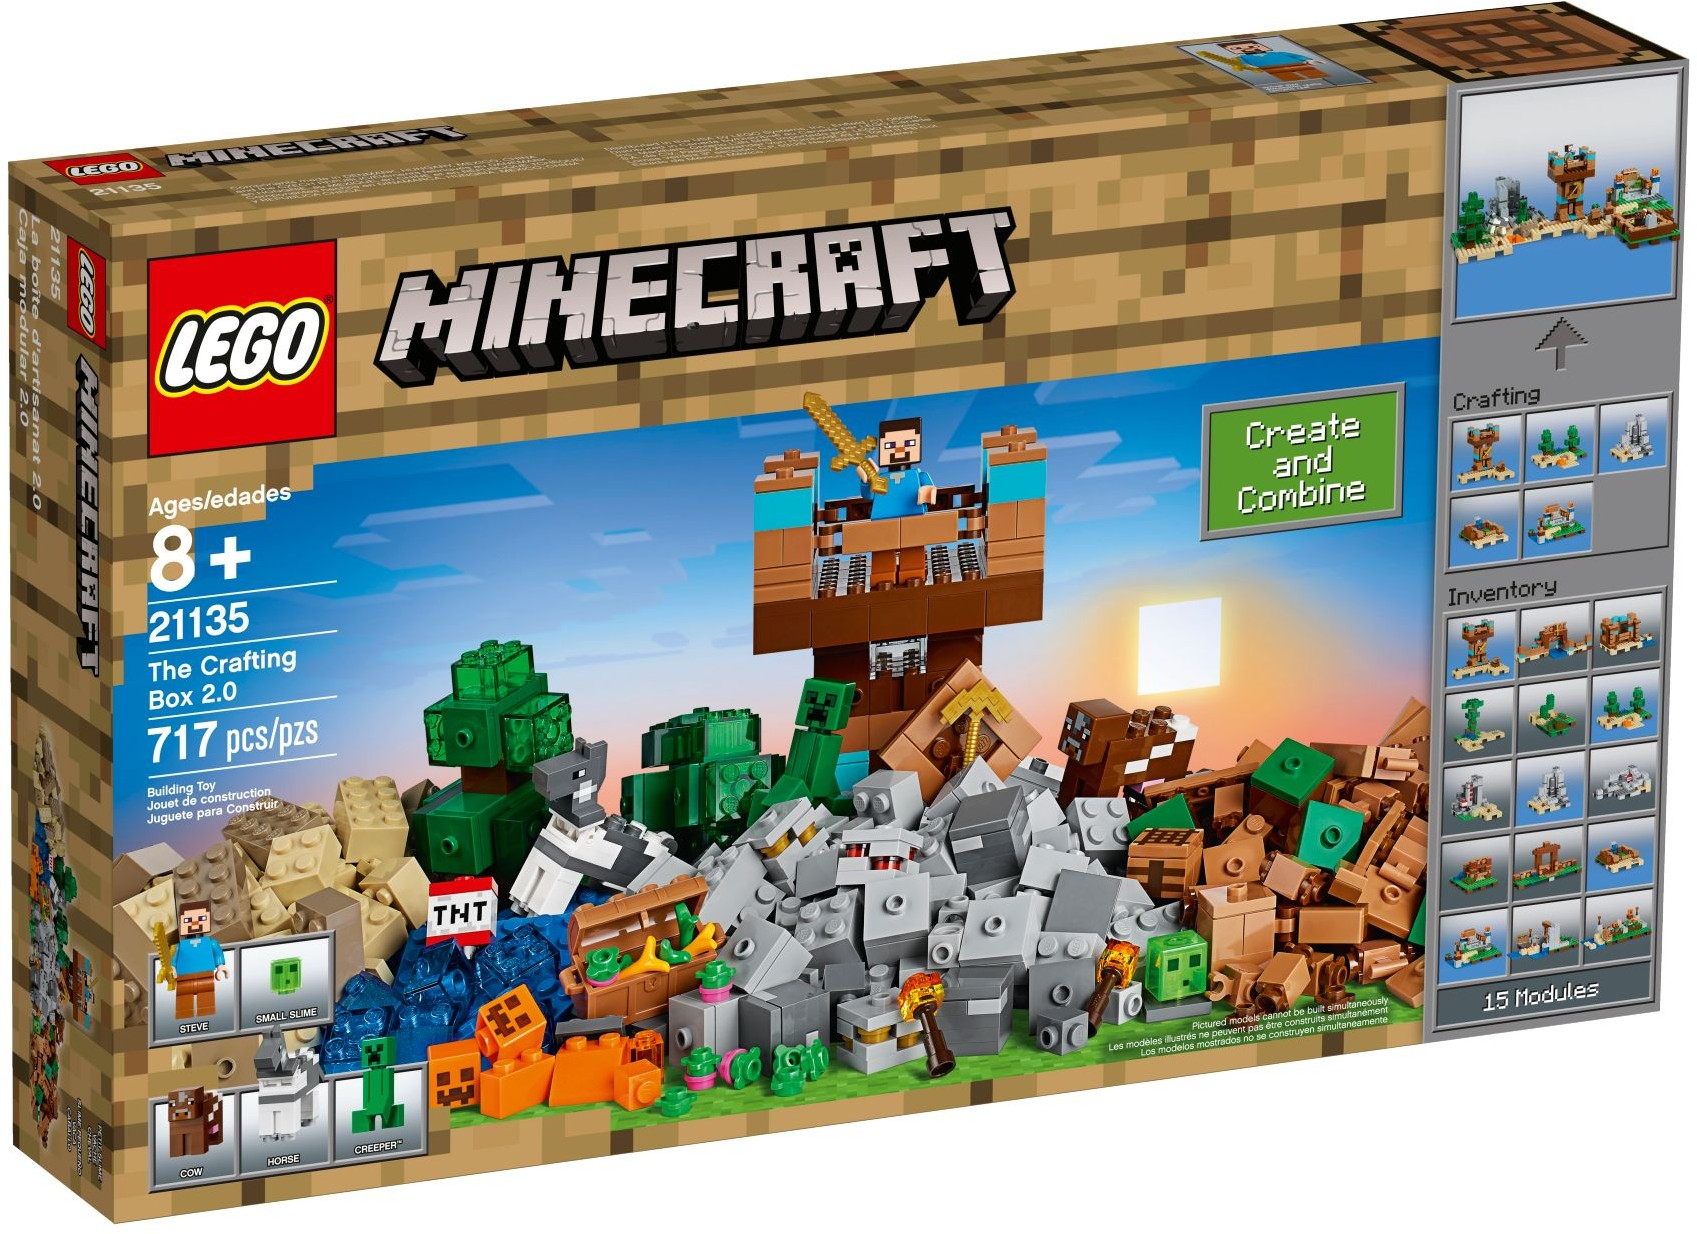 21135 LEGO Minecraft™ LEGO Minecraft the Crafting Box 2.0